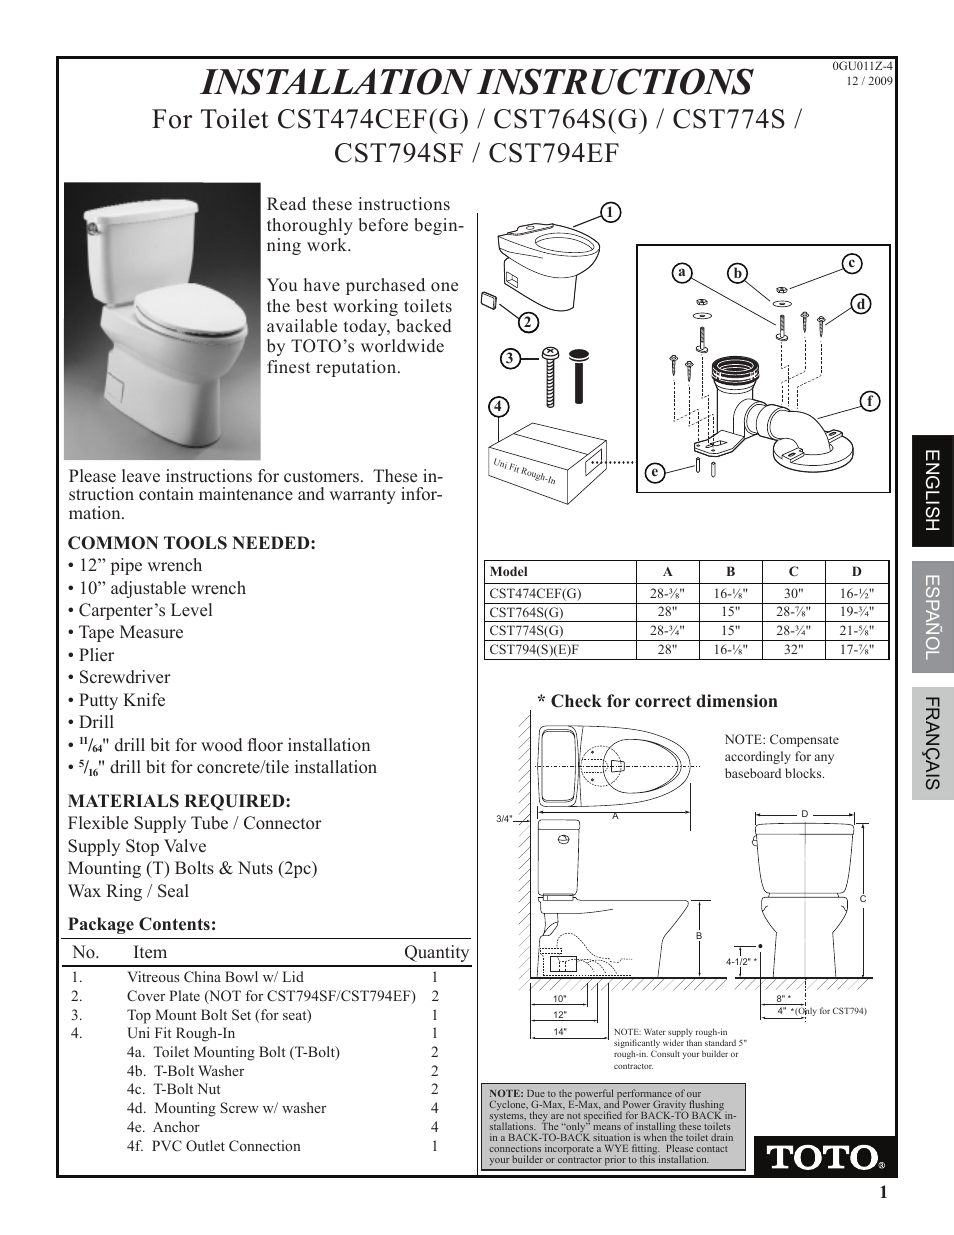 Factory Direct Hardware Toto Cst474cefg Vespin User Manual 12 Pages